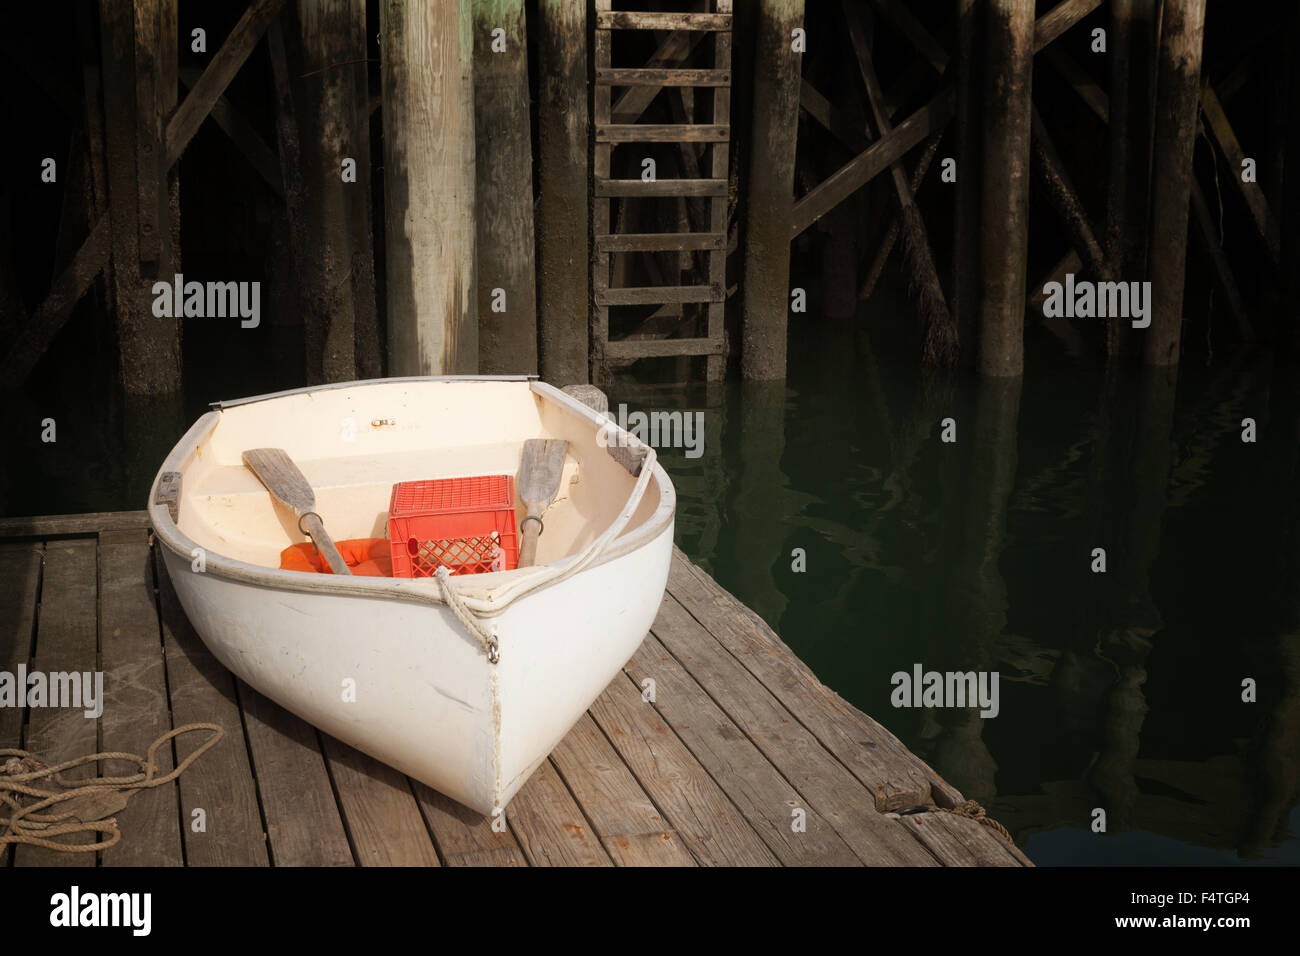 A white rowing boat on a jetty, Maine USA - Stock Image